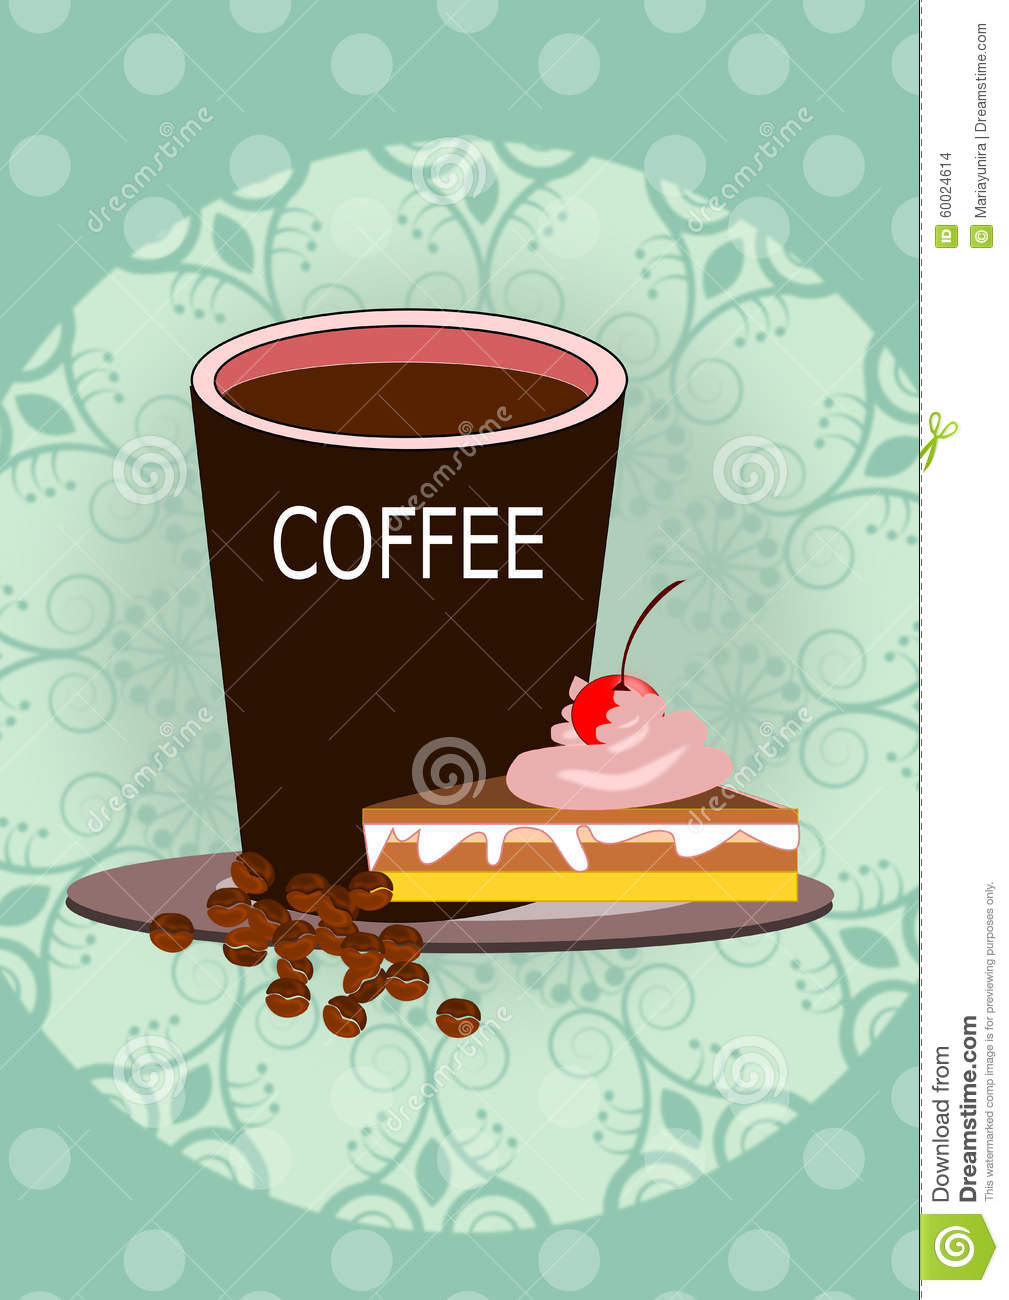 clipart coffee and cake - photo #35